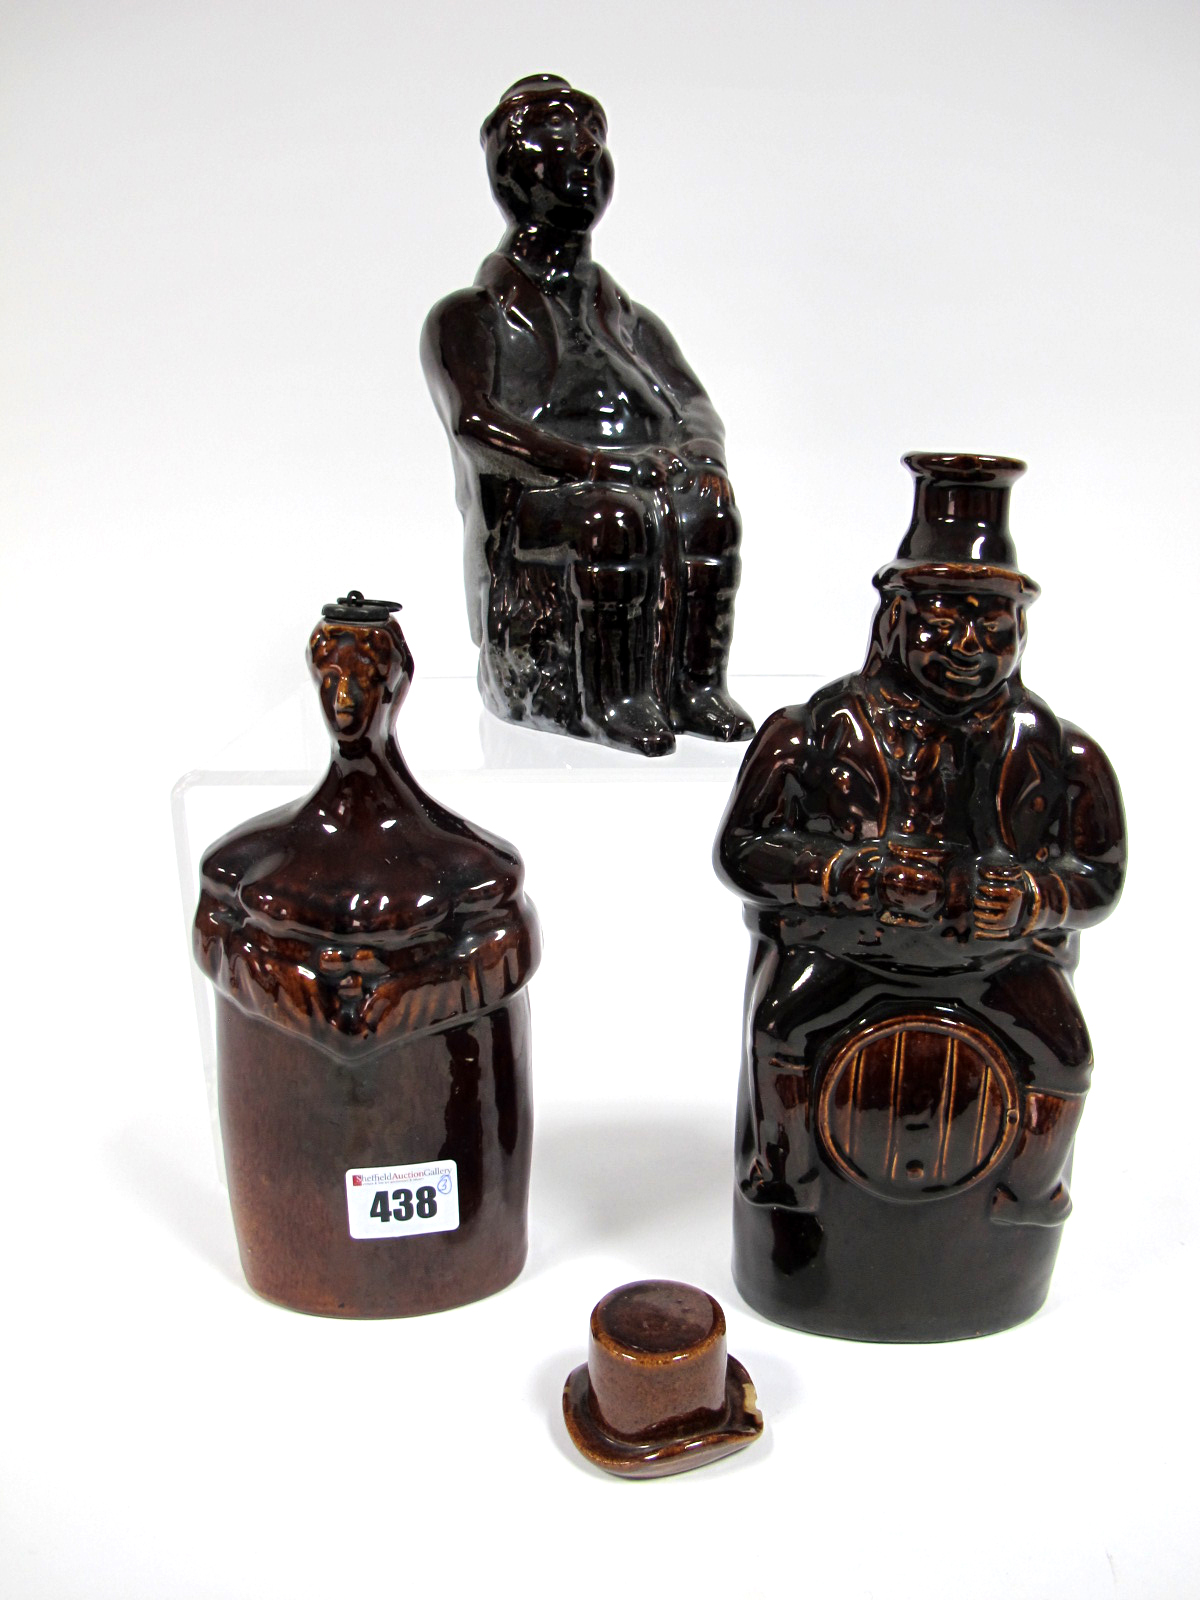 Lot 438 - A Mid XIX Century Treacle Glazed Stoneware Flask, modelled as a gentleman seated astride a barrel,